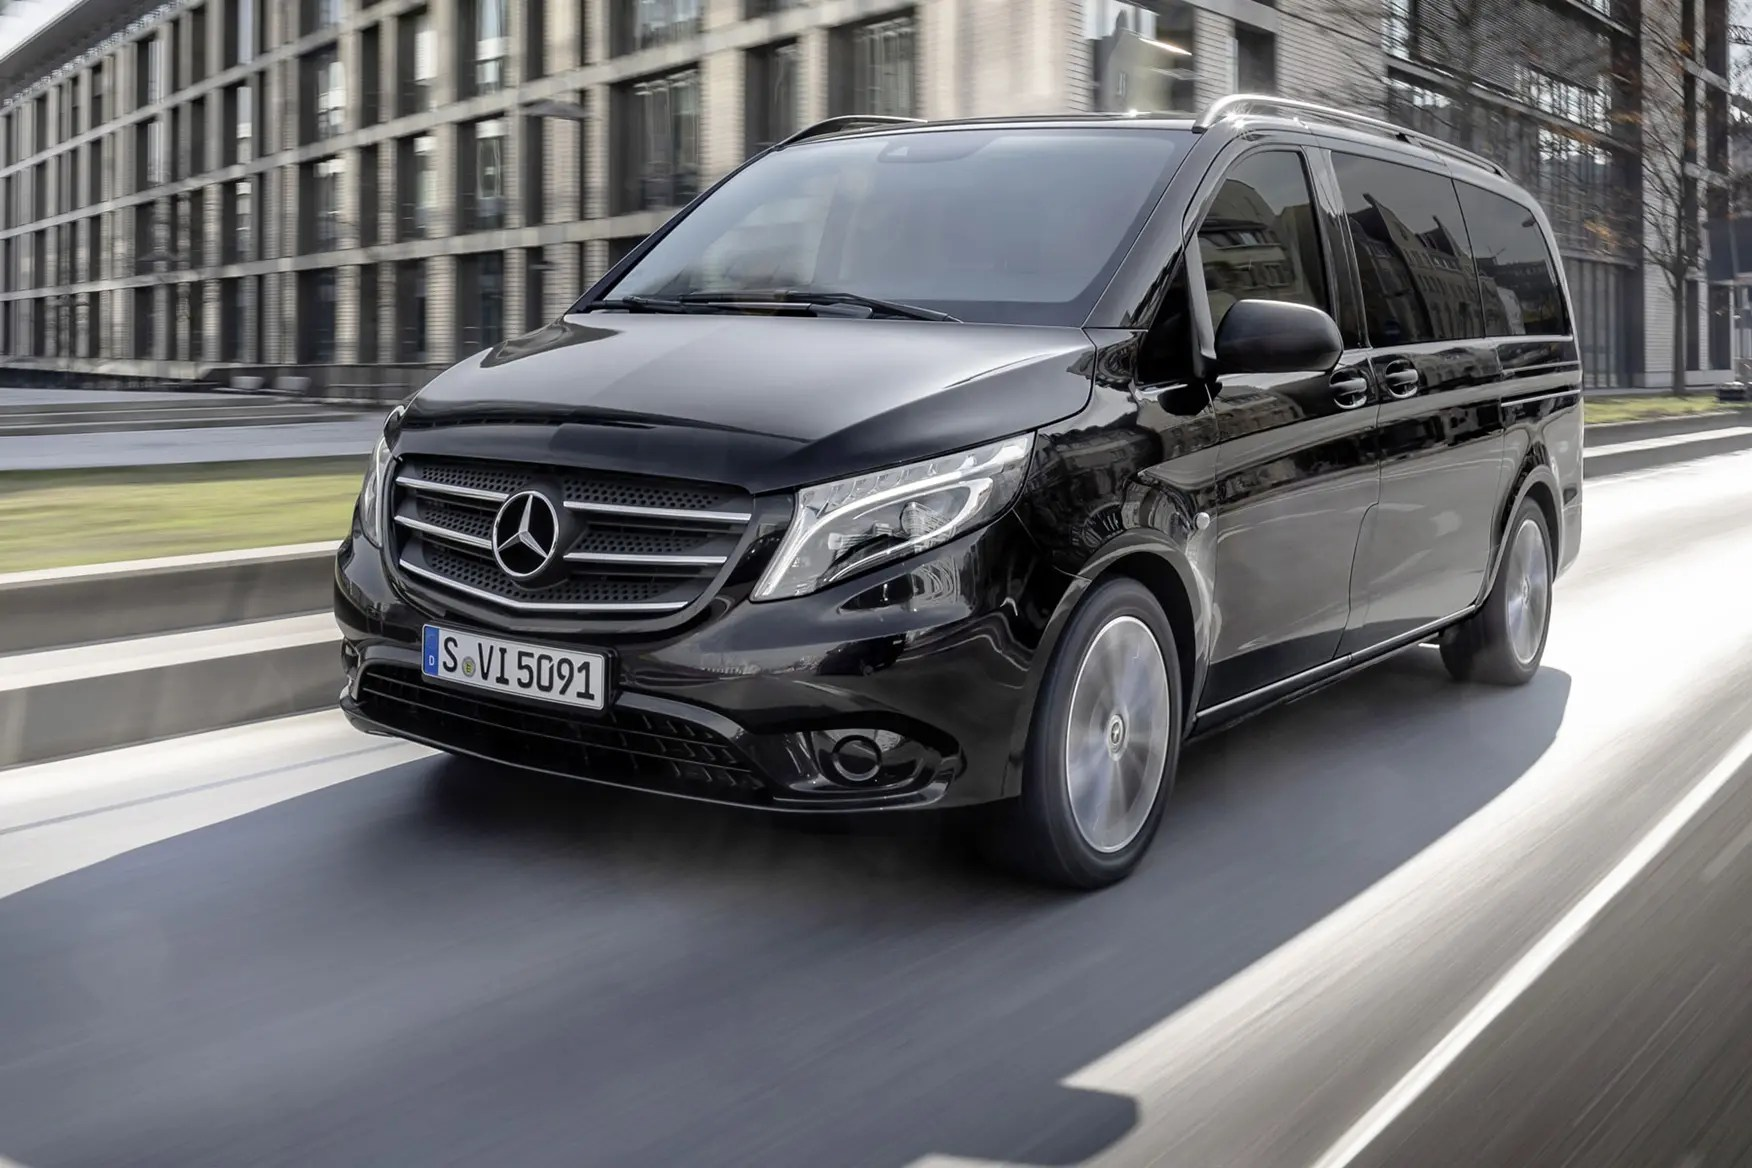 Mercedes Vito Tourer Mercedes Benz Vito 2019 New Engines And Tech Revealed Parkers